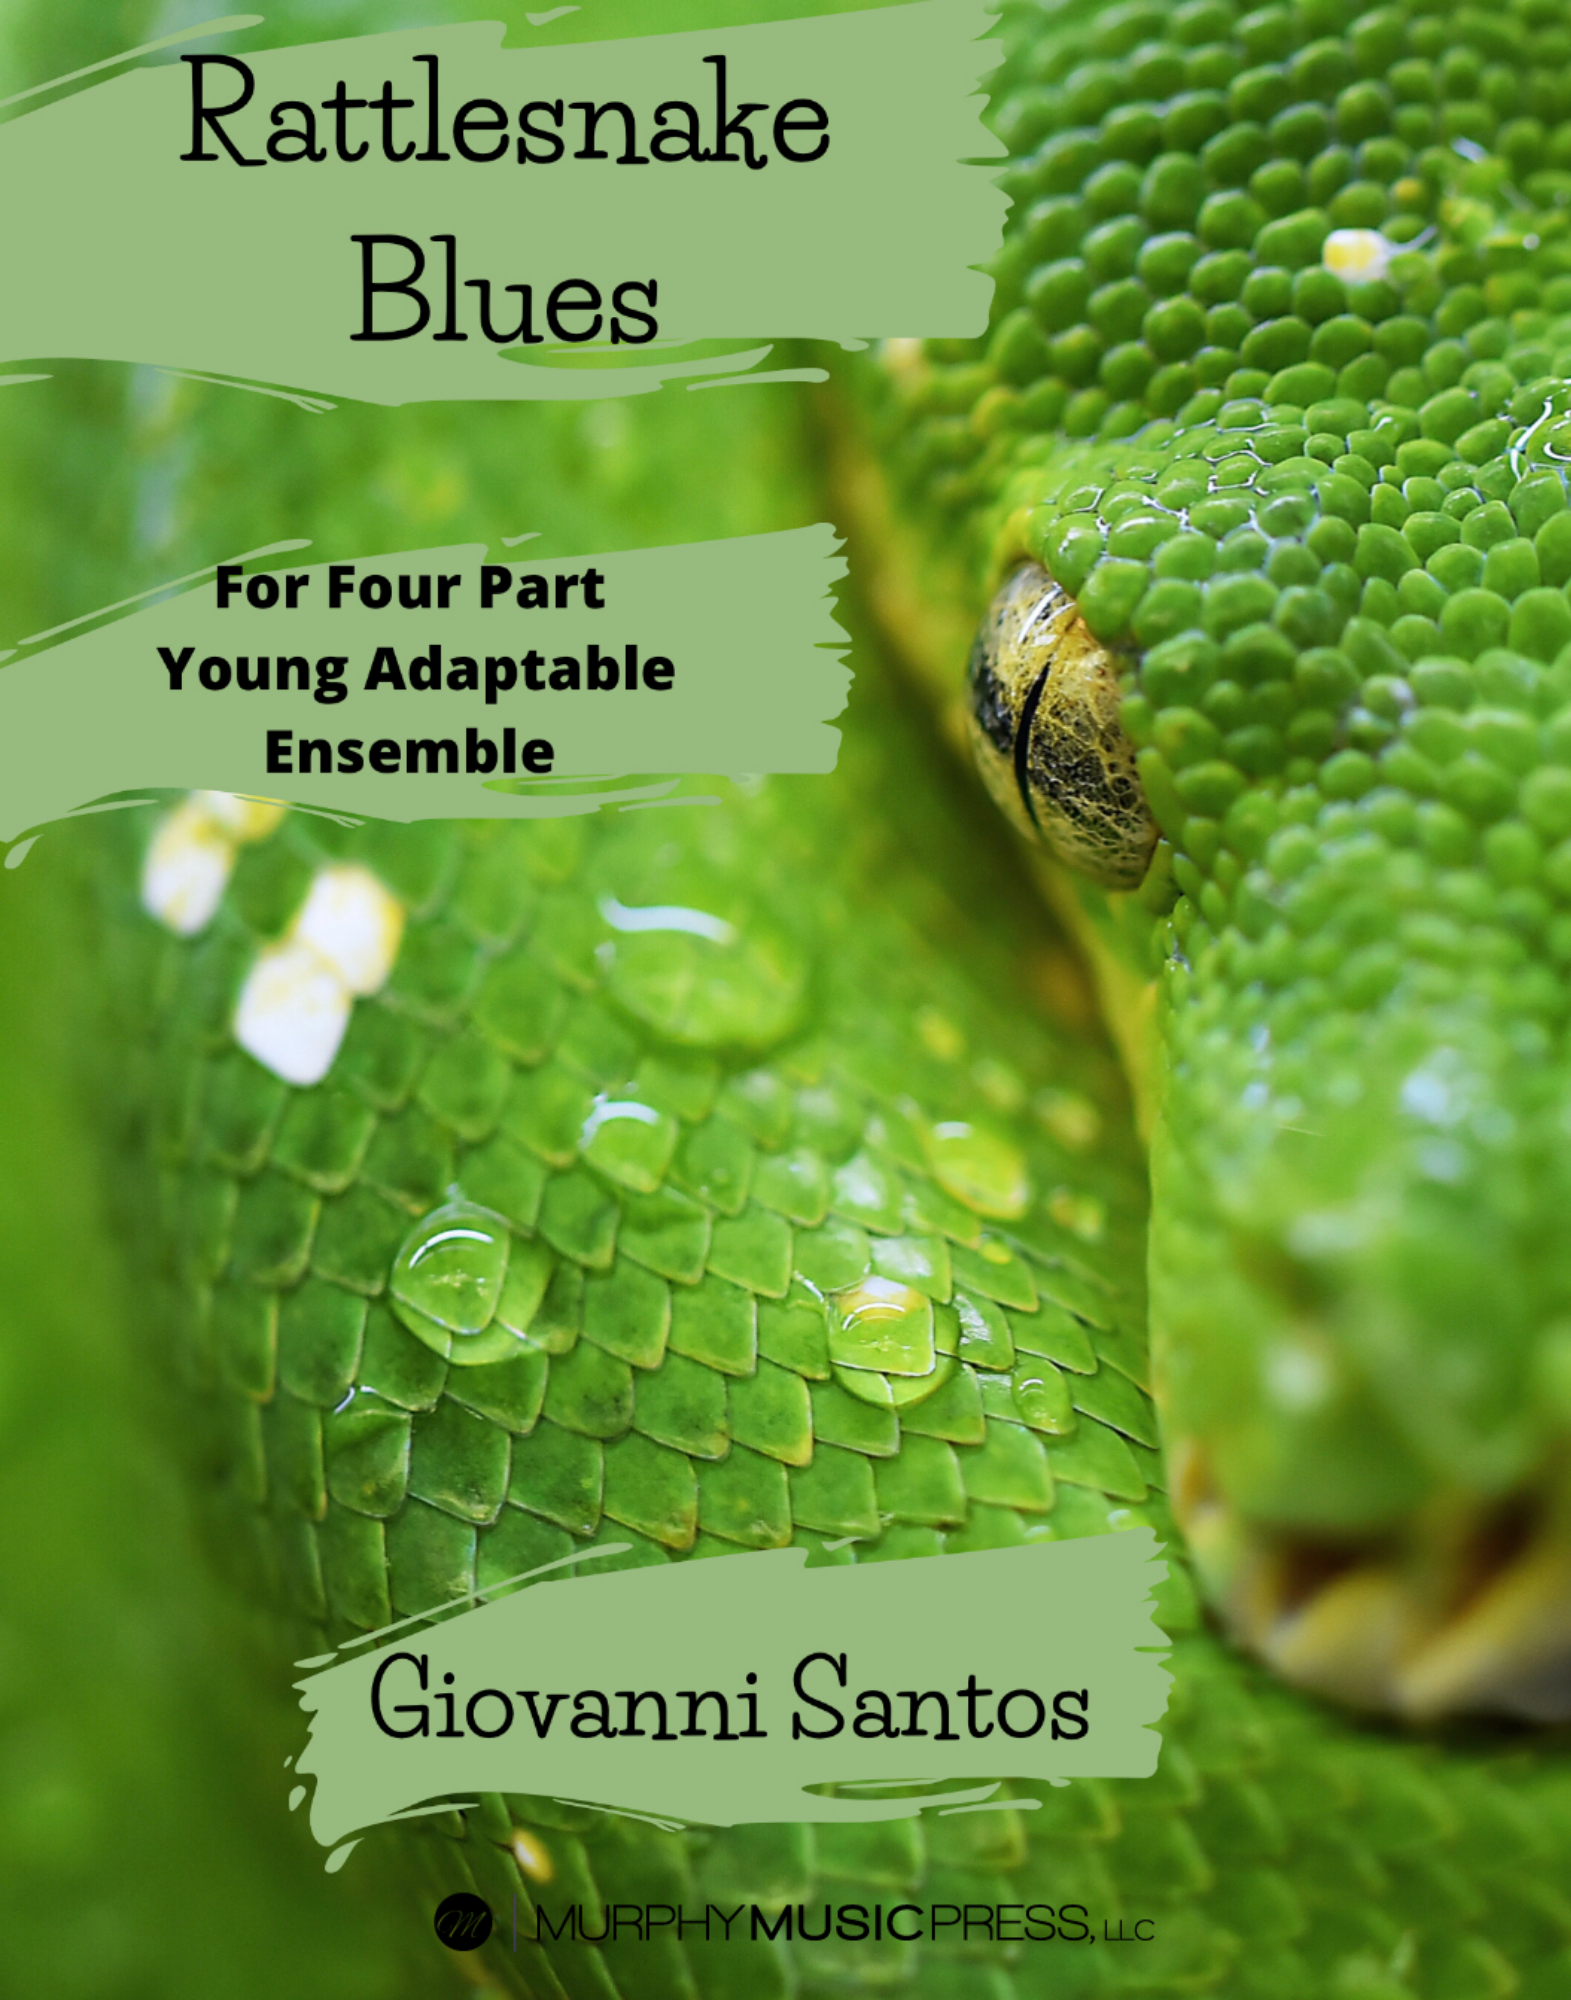 Rattlesnake Blues  by Giovanni Santos